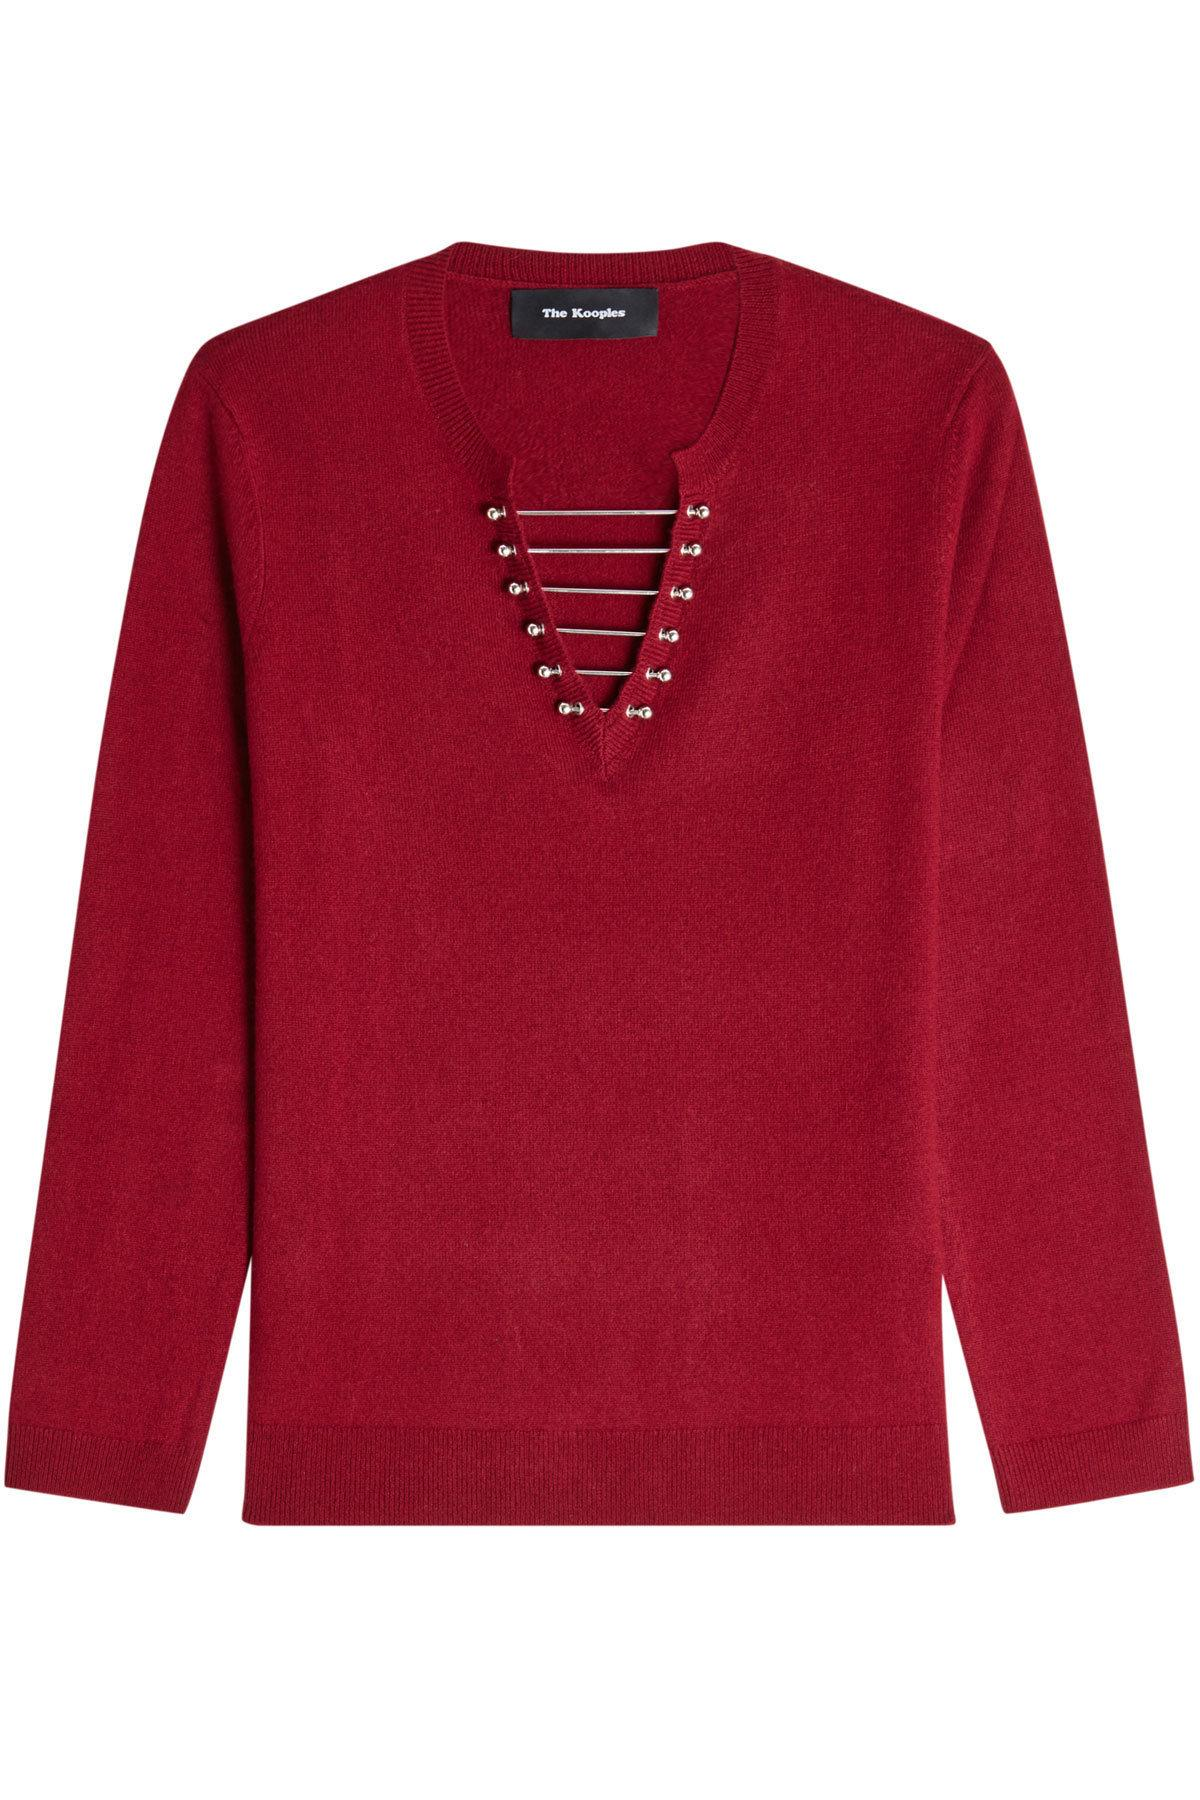 The Kooples Embellished Wool Pullover With Cashmere In Red